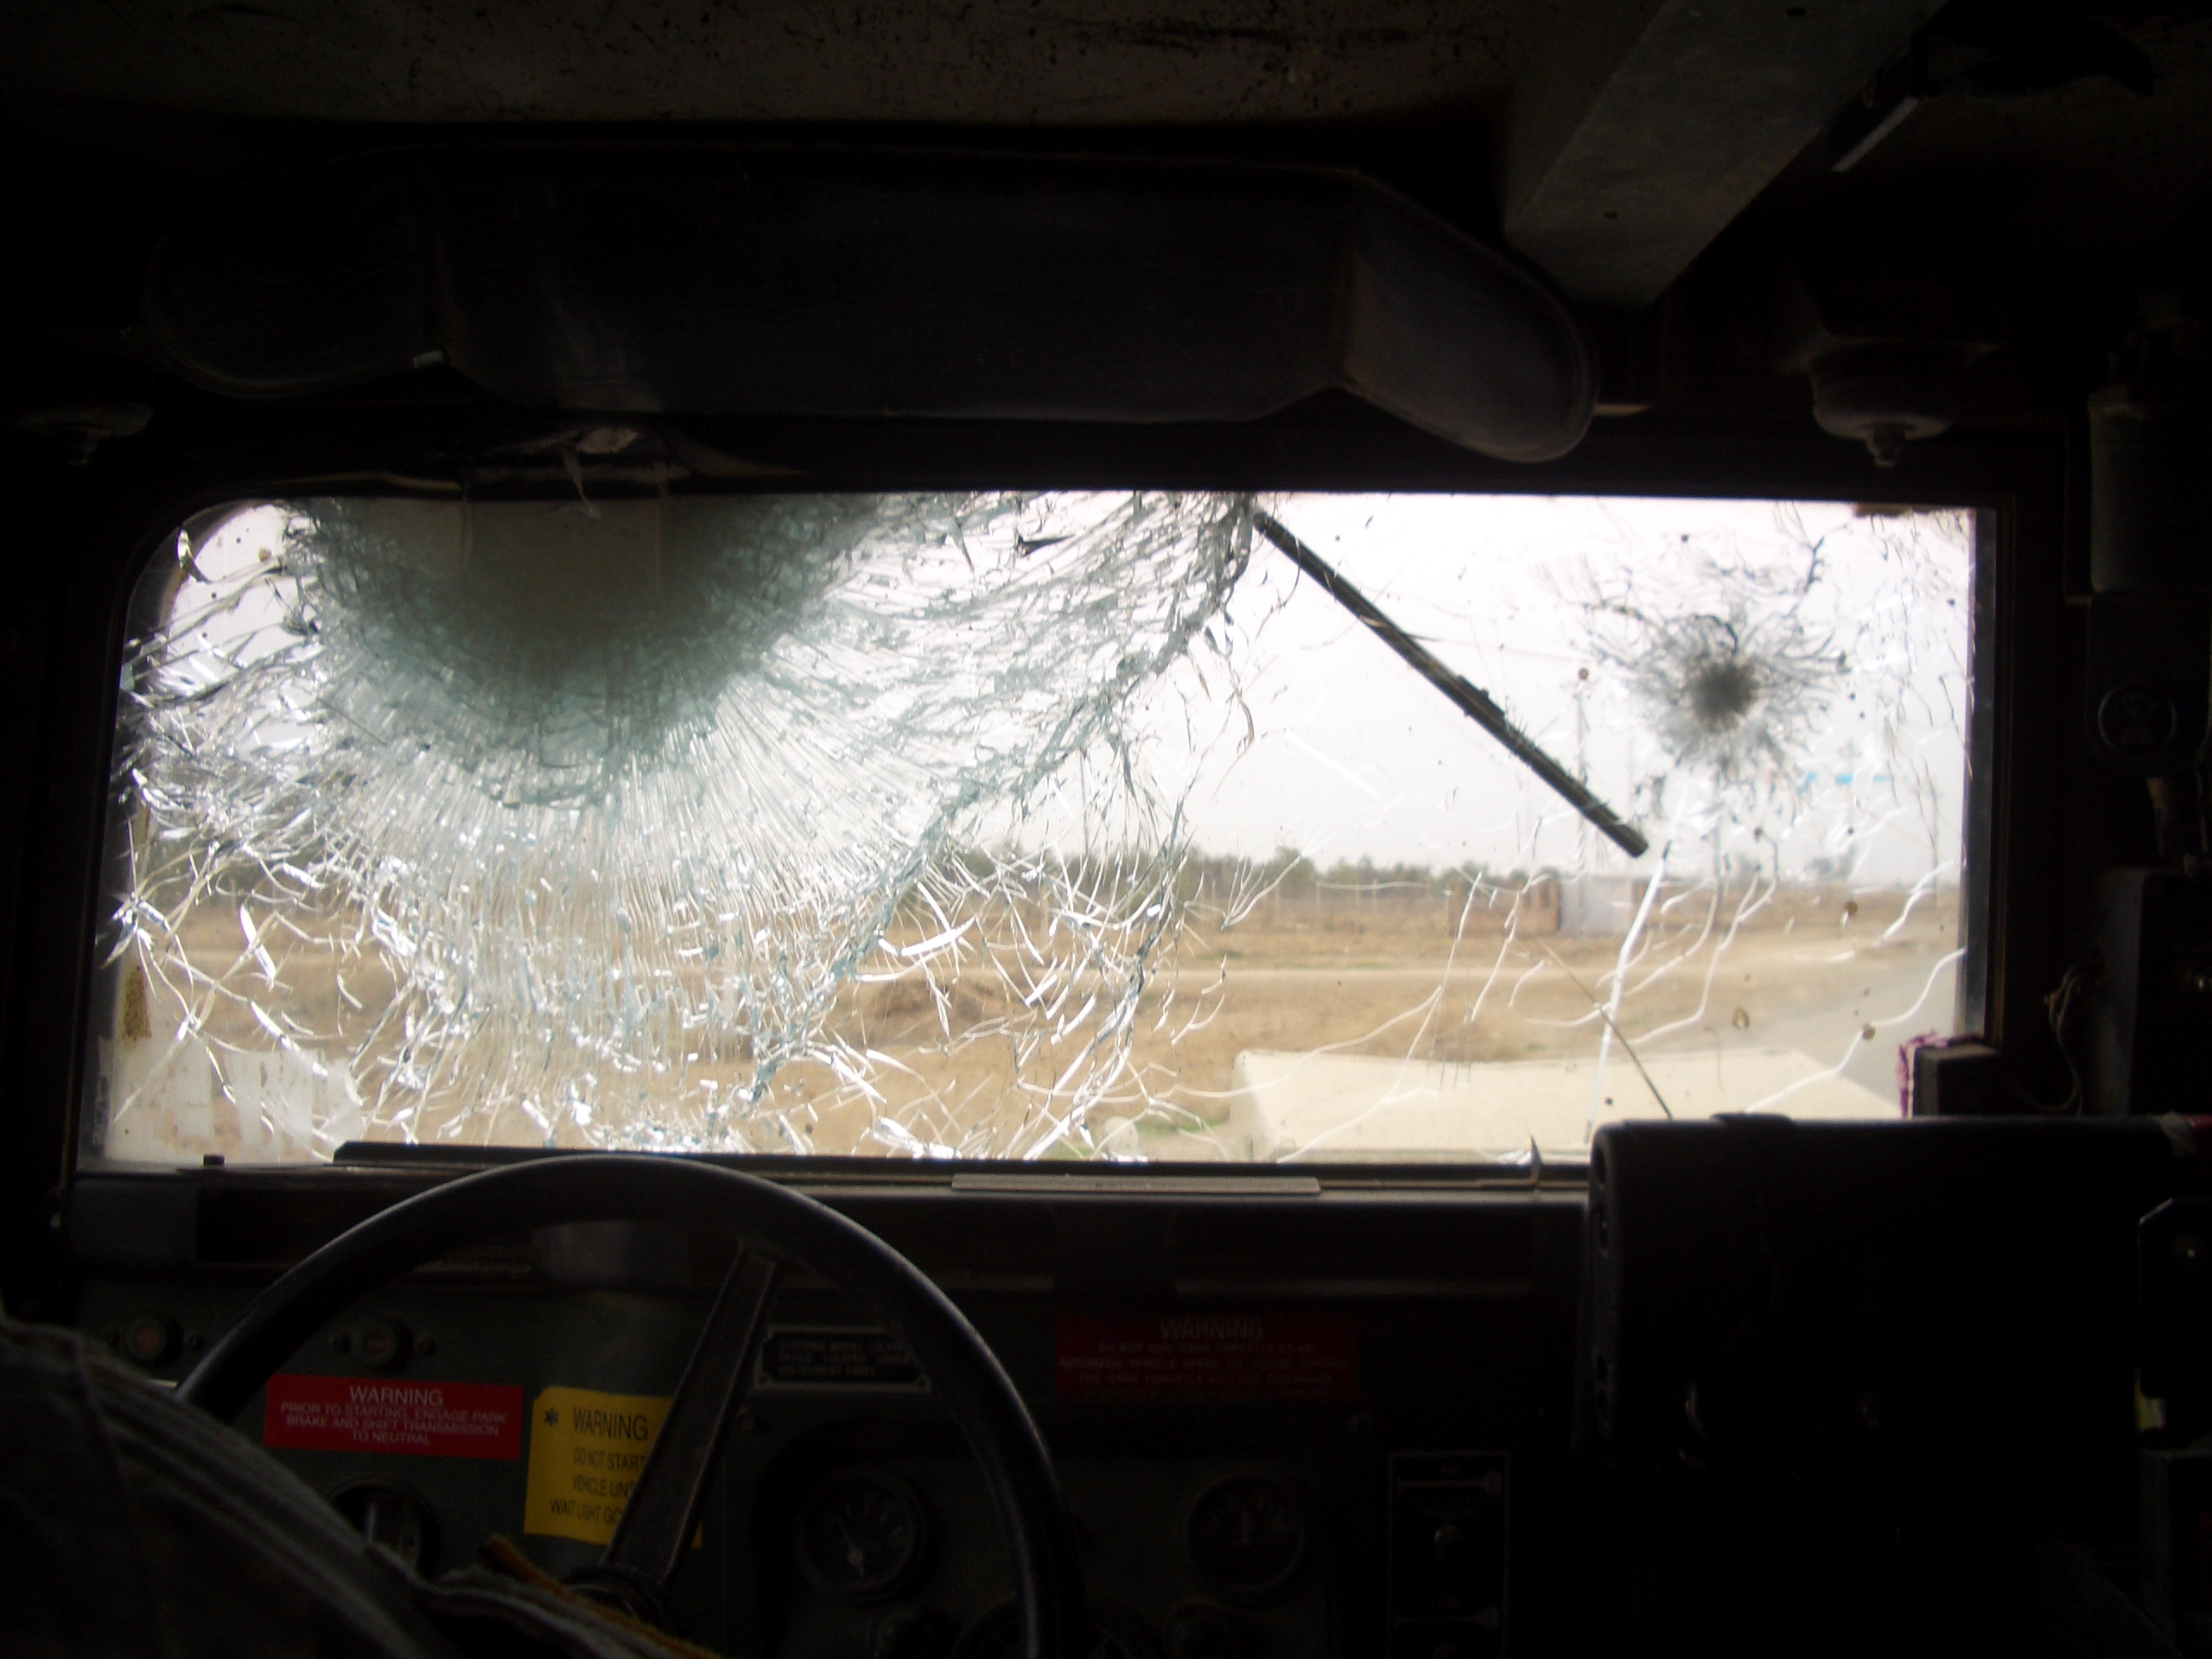 The armored glass windows of the Humvees can take some damage. The crew of this Humvee took a roadside bomb blast to the front, but everyone emerged mostly unscathed.